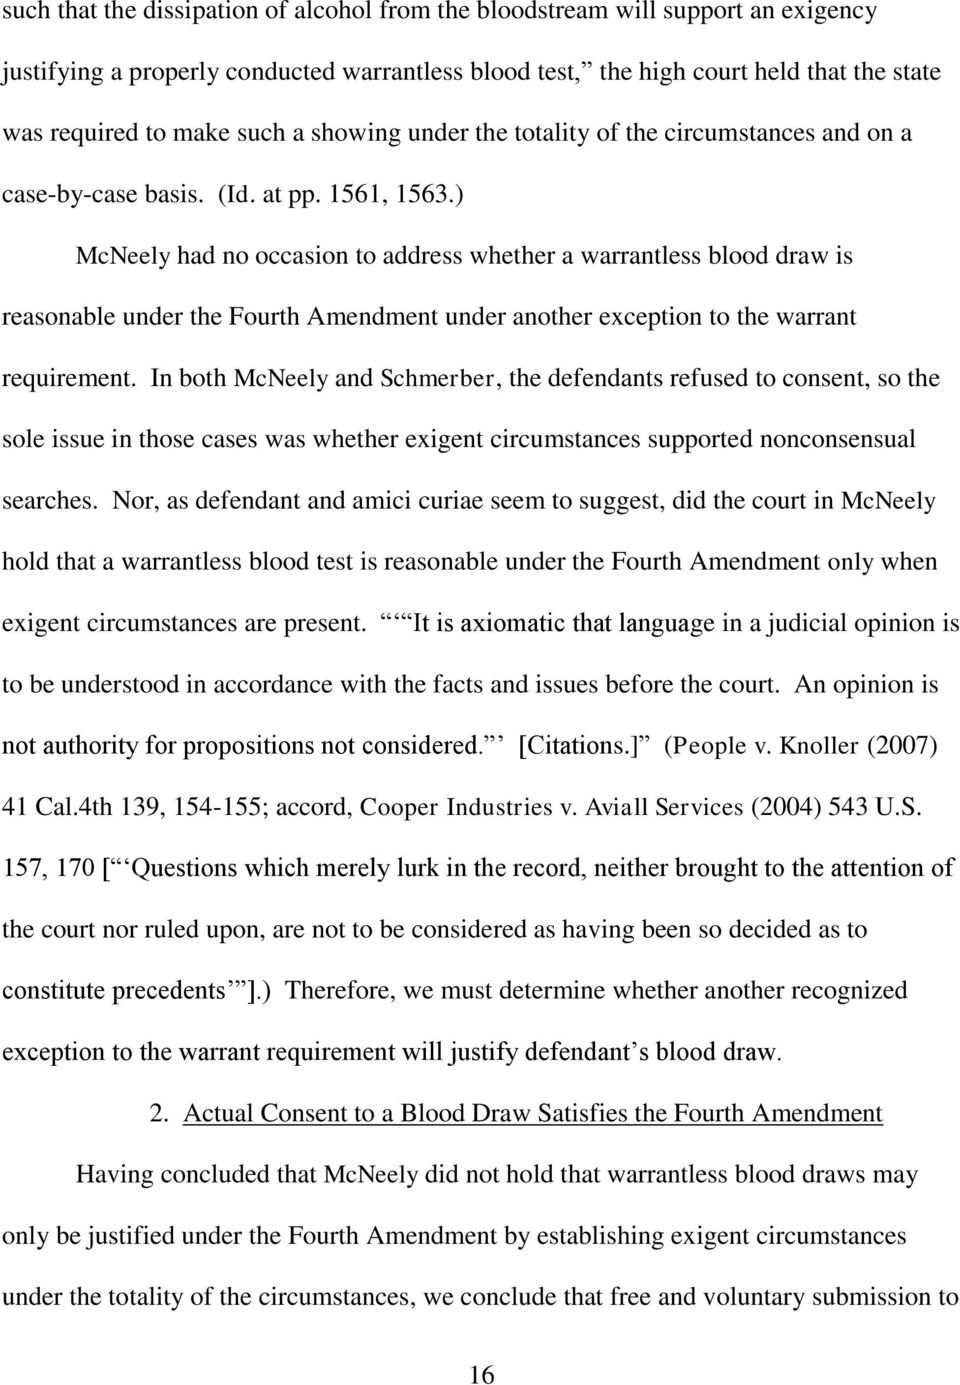 ) McNeely had no occasion to address whether a warrantless blood draw is reasonable under the Fourth Amendment under another exception to the warrant requirement.